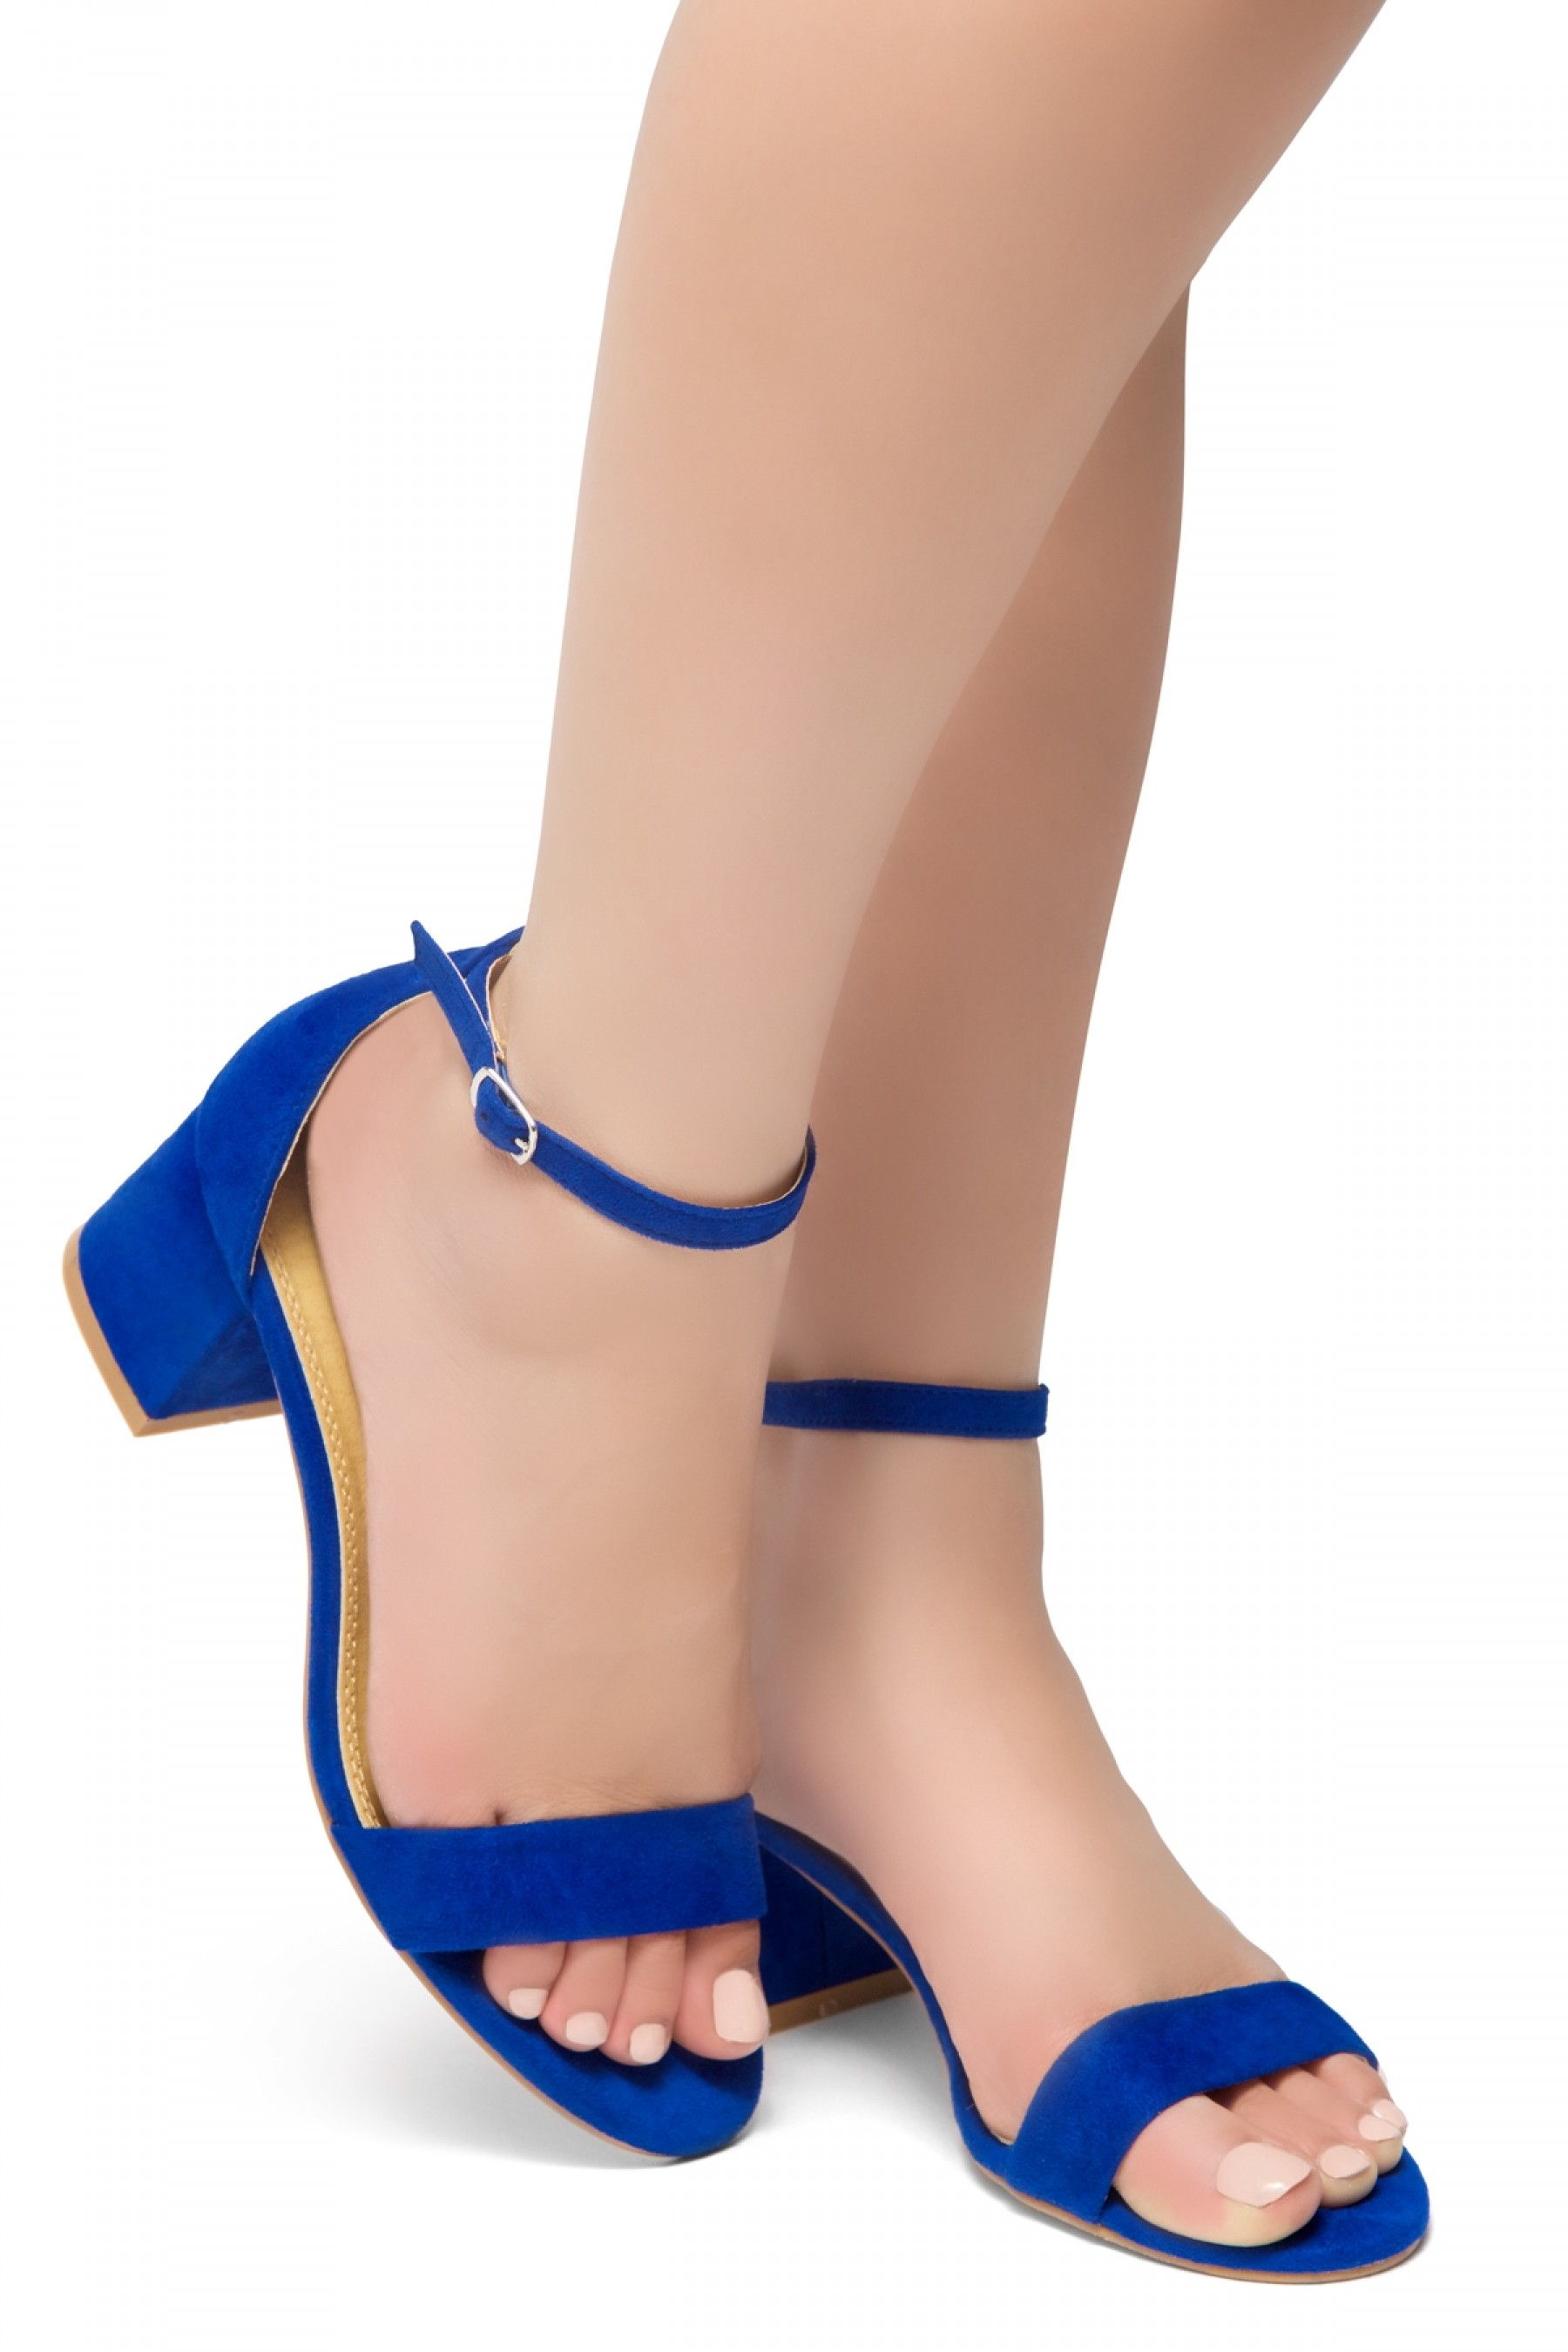 HerStyle SUNDAY-open toe, block heel,ankle strap with an adjustable buckle (RoyalBlue)